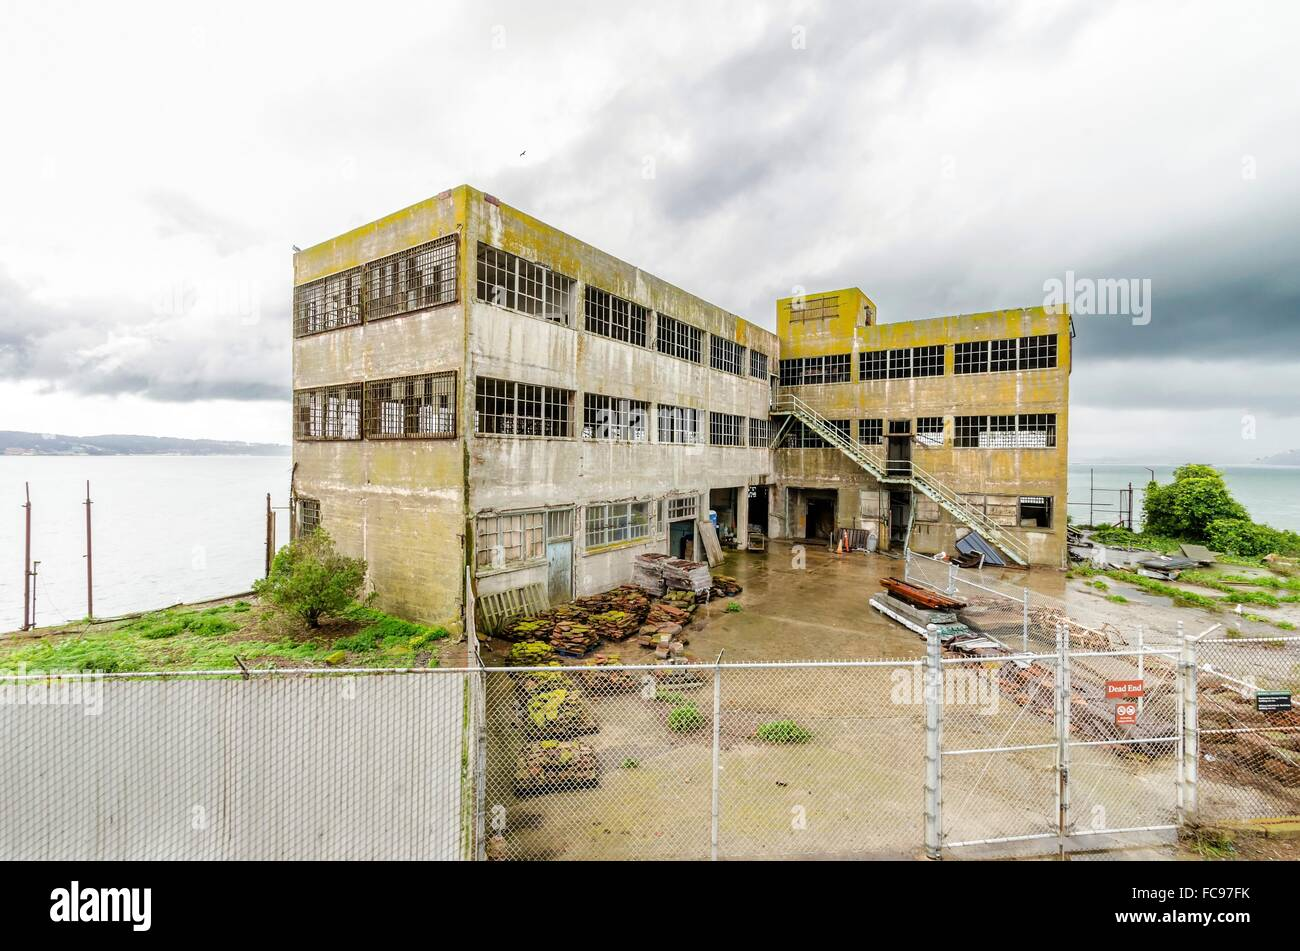 Model Industries Building on Alcatraz Penitentiary in San Francisco, California. An old, moldy, haunting building, - Stock Image